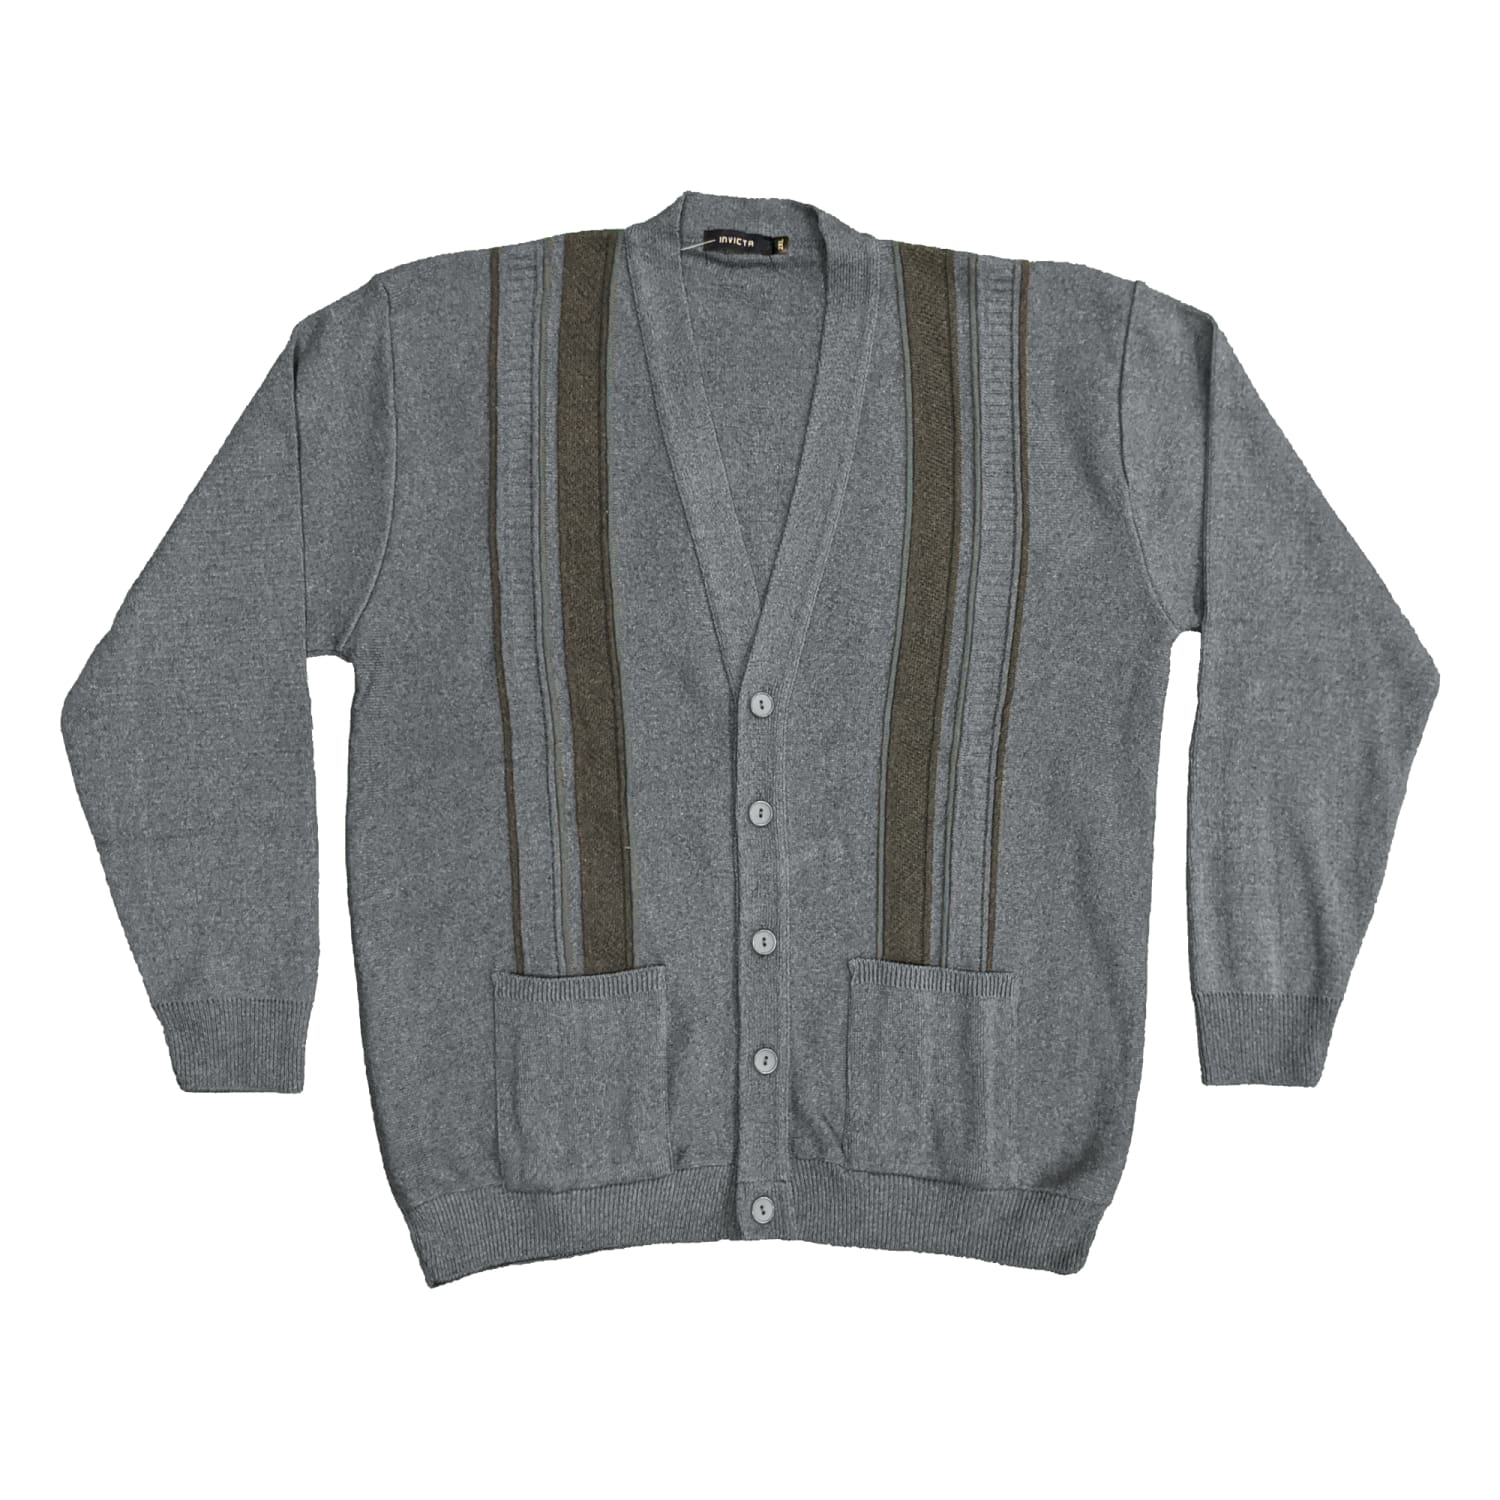 Invicta Cardigan - 02470 - Blue 1